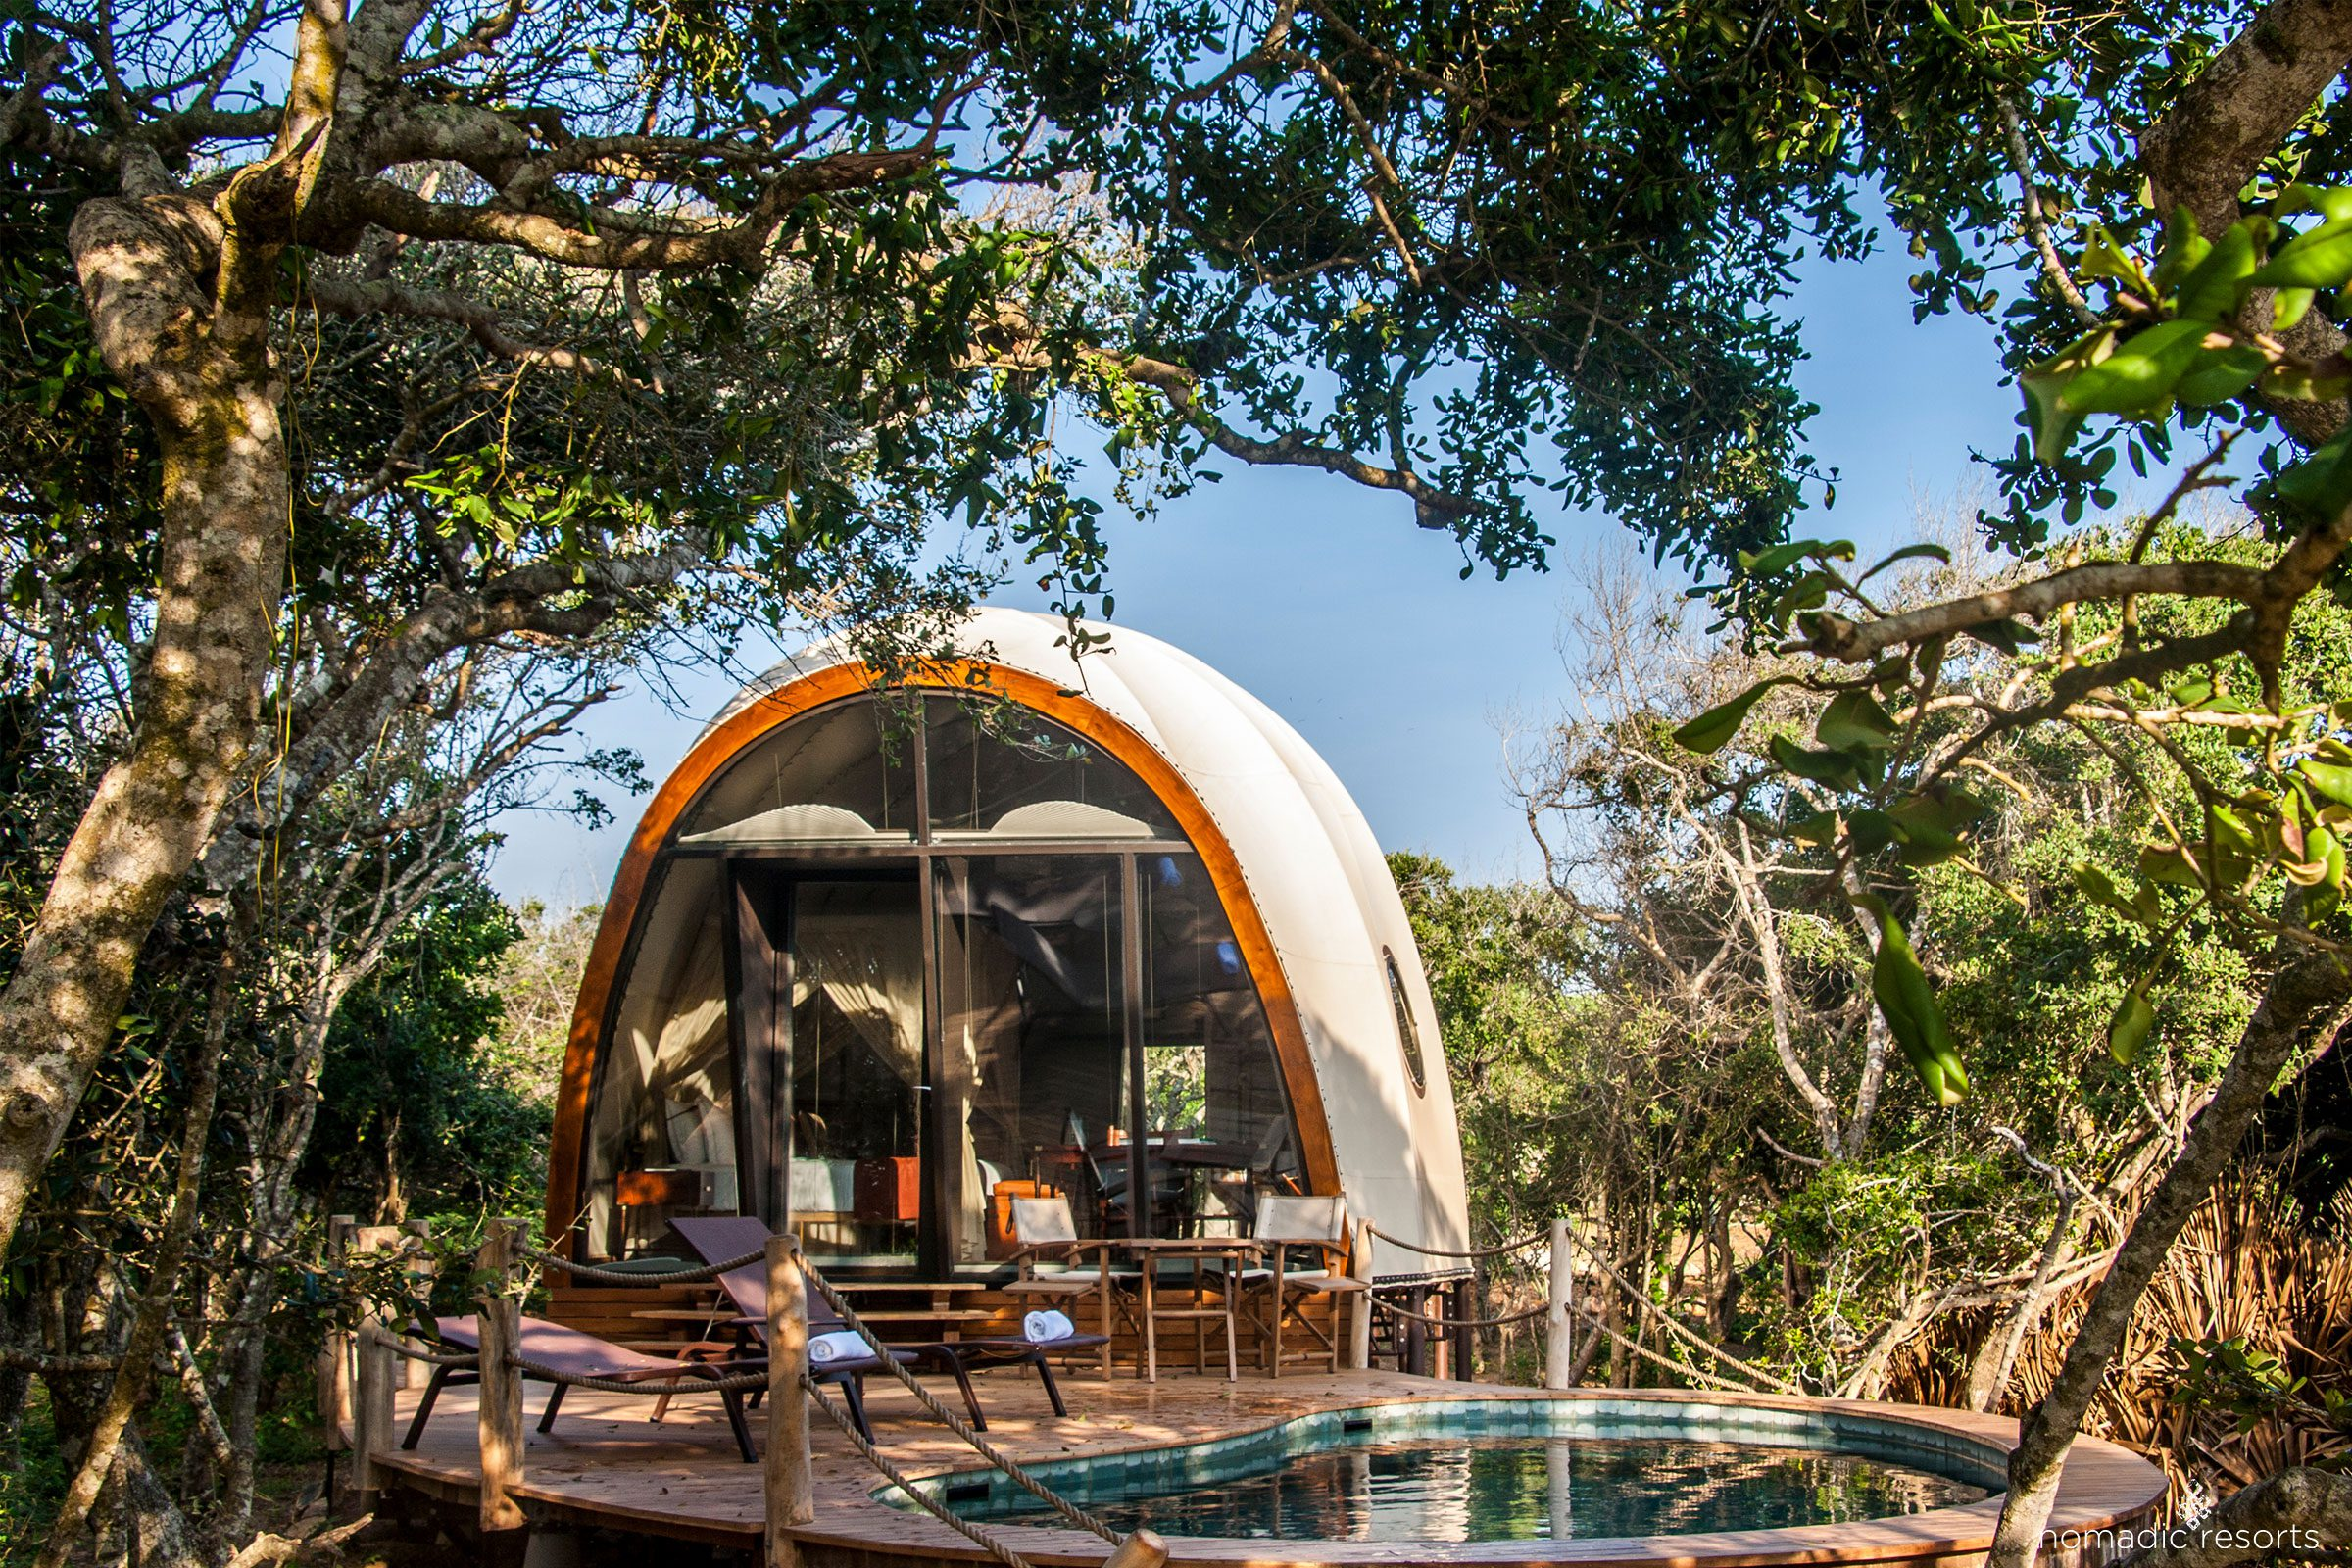 Cocoon suite exterior at Wild Coast Tented Lodge, Sri Lanka